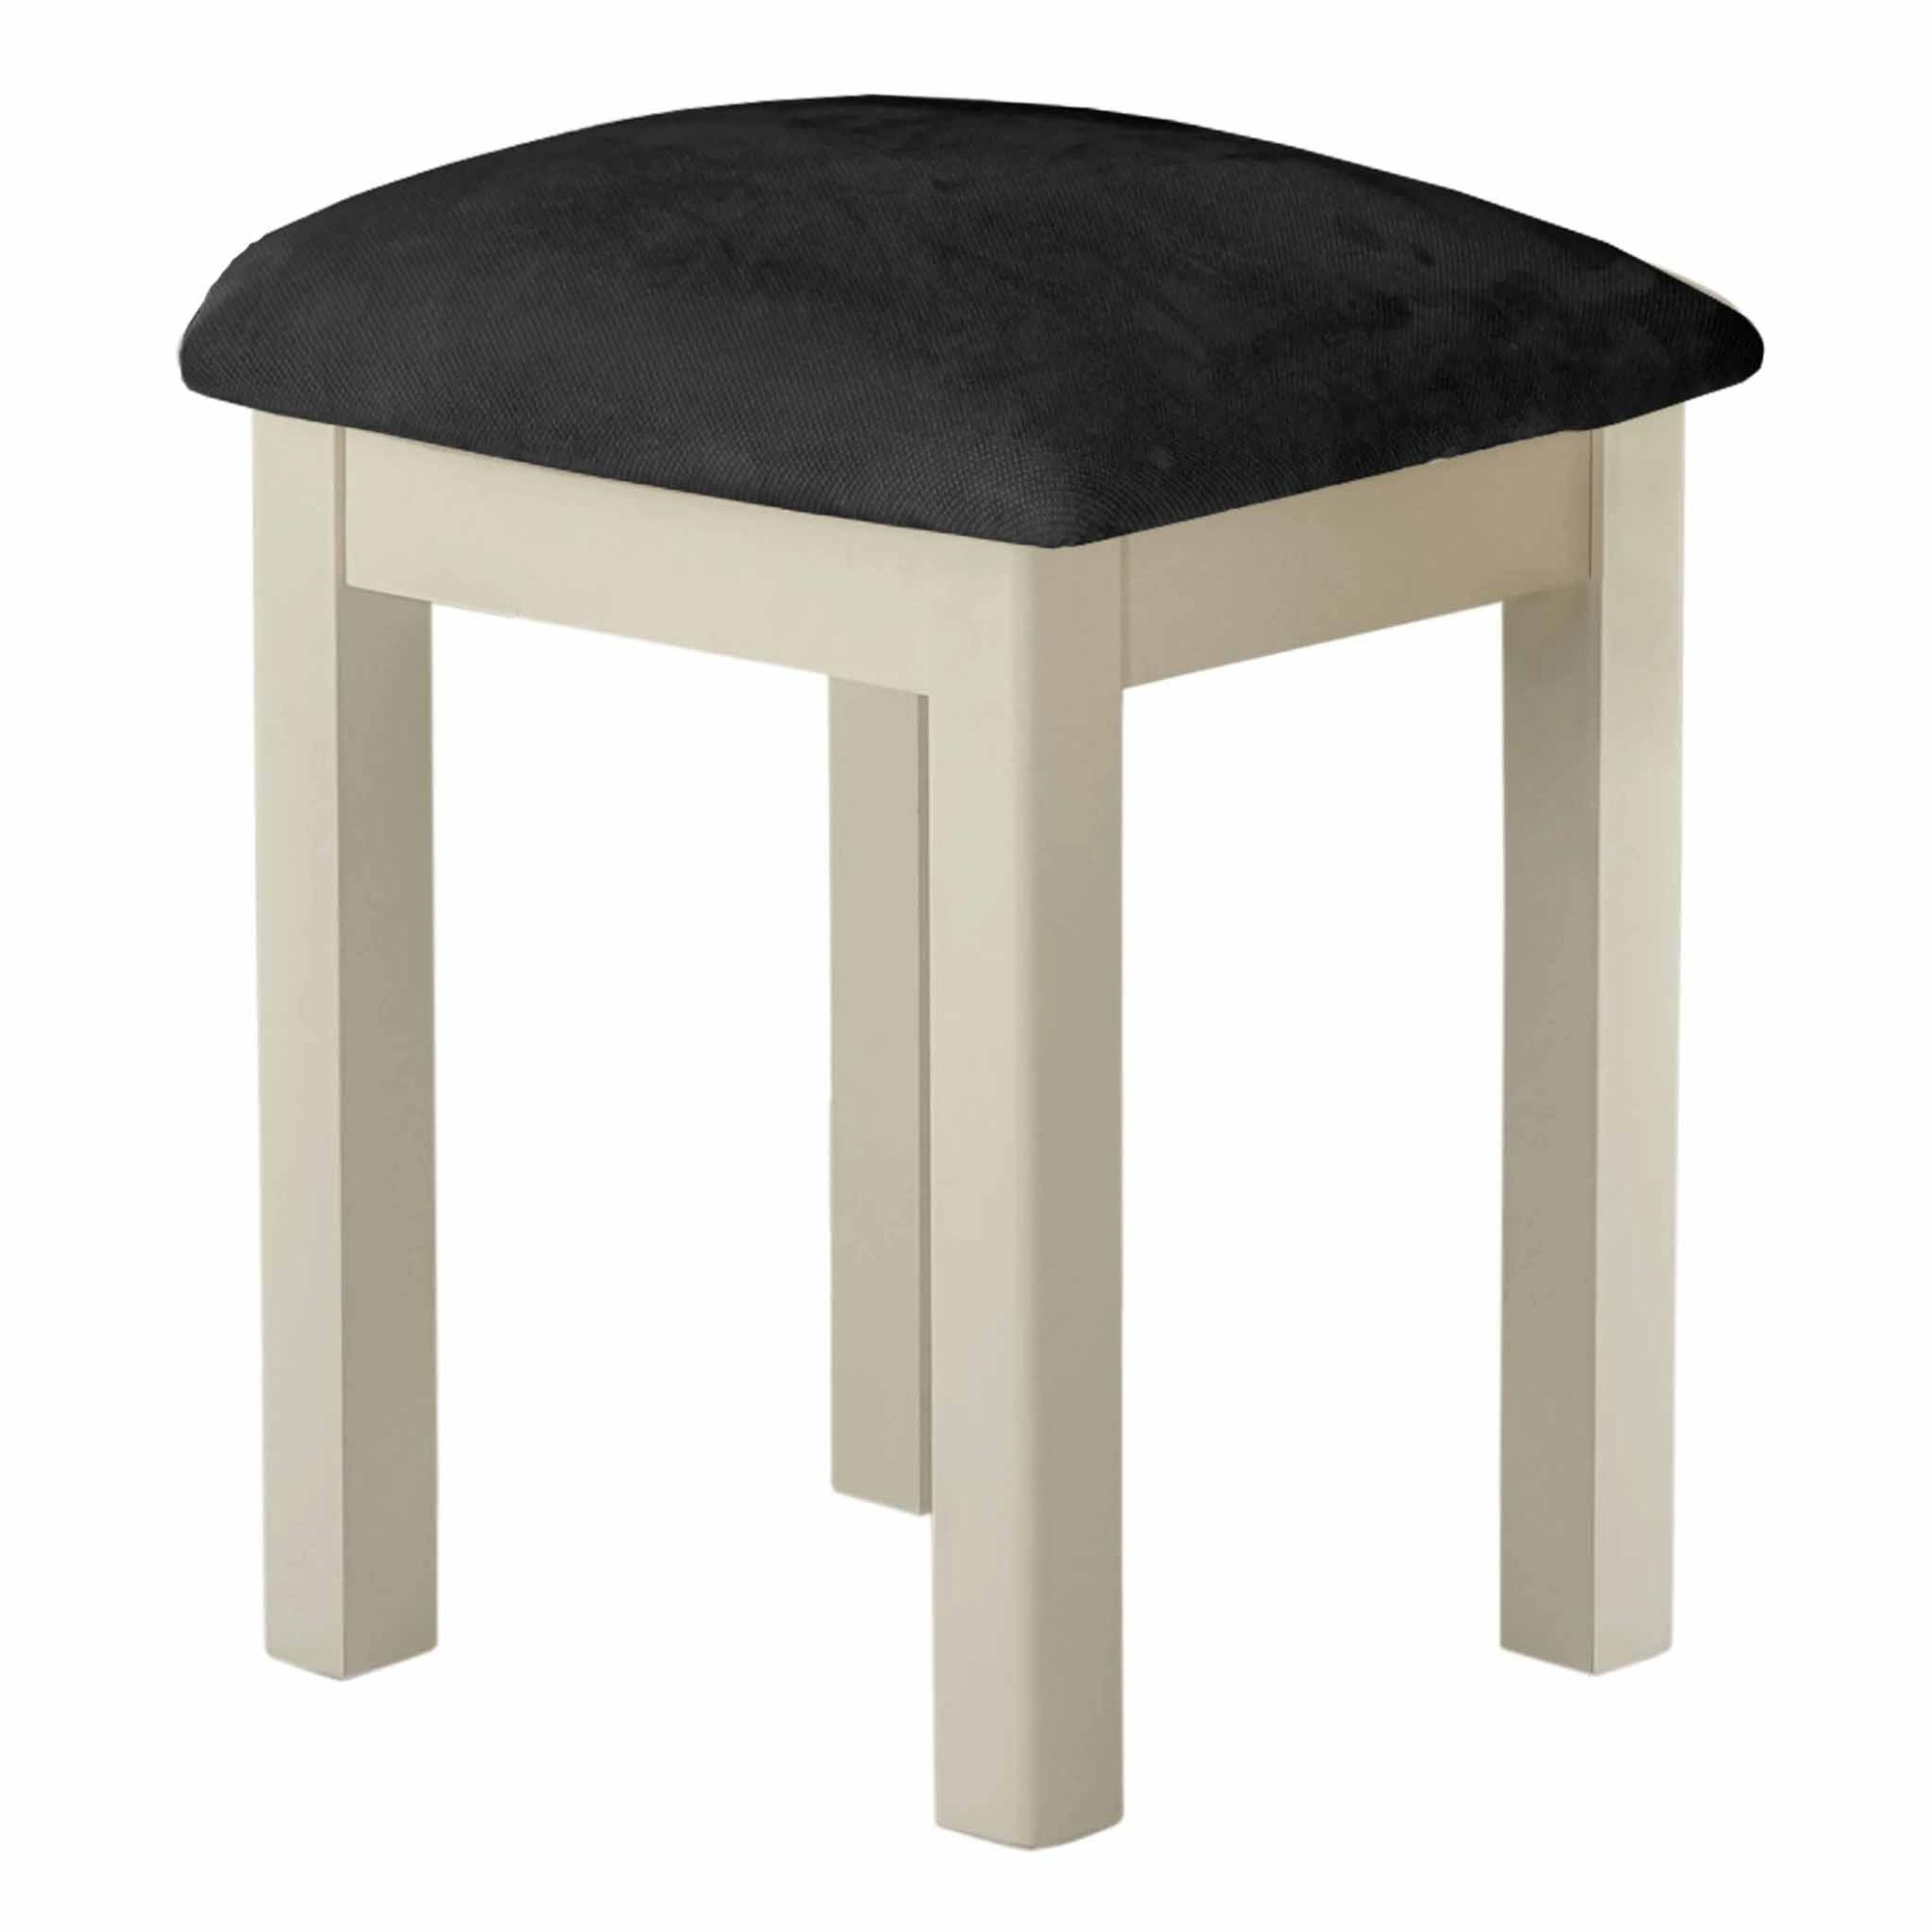 The Padstow Cream Small Wooden Dining Stool with Padded Seat from Roseland Furniture